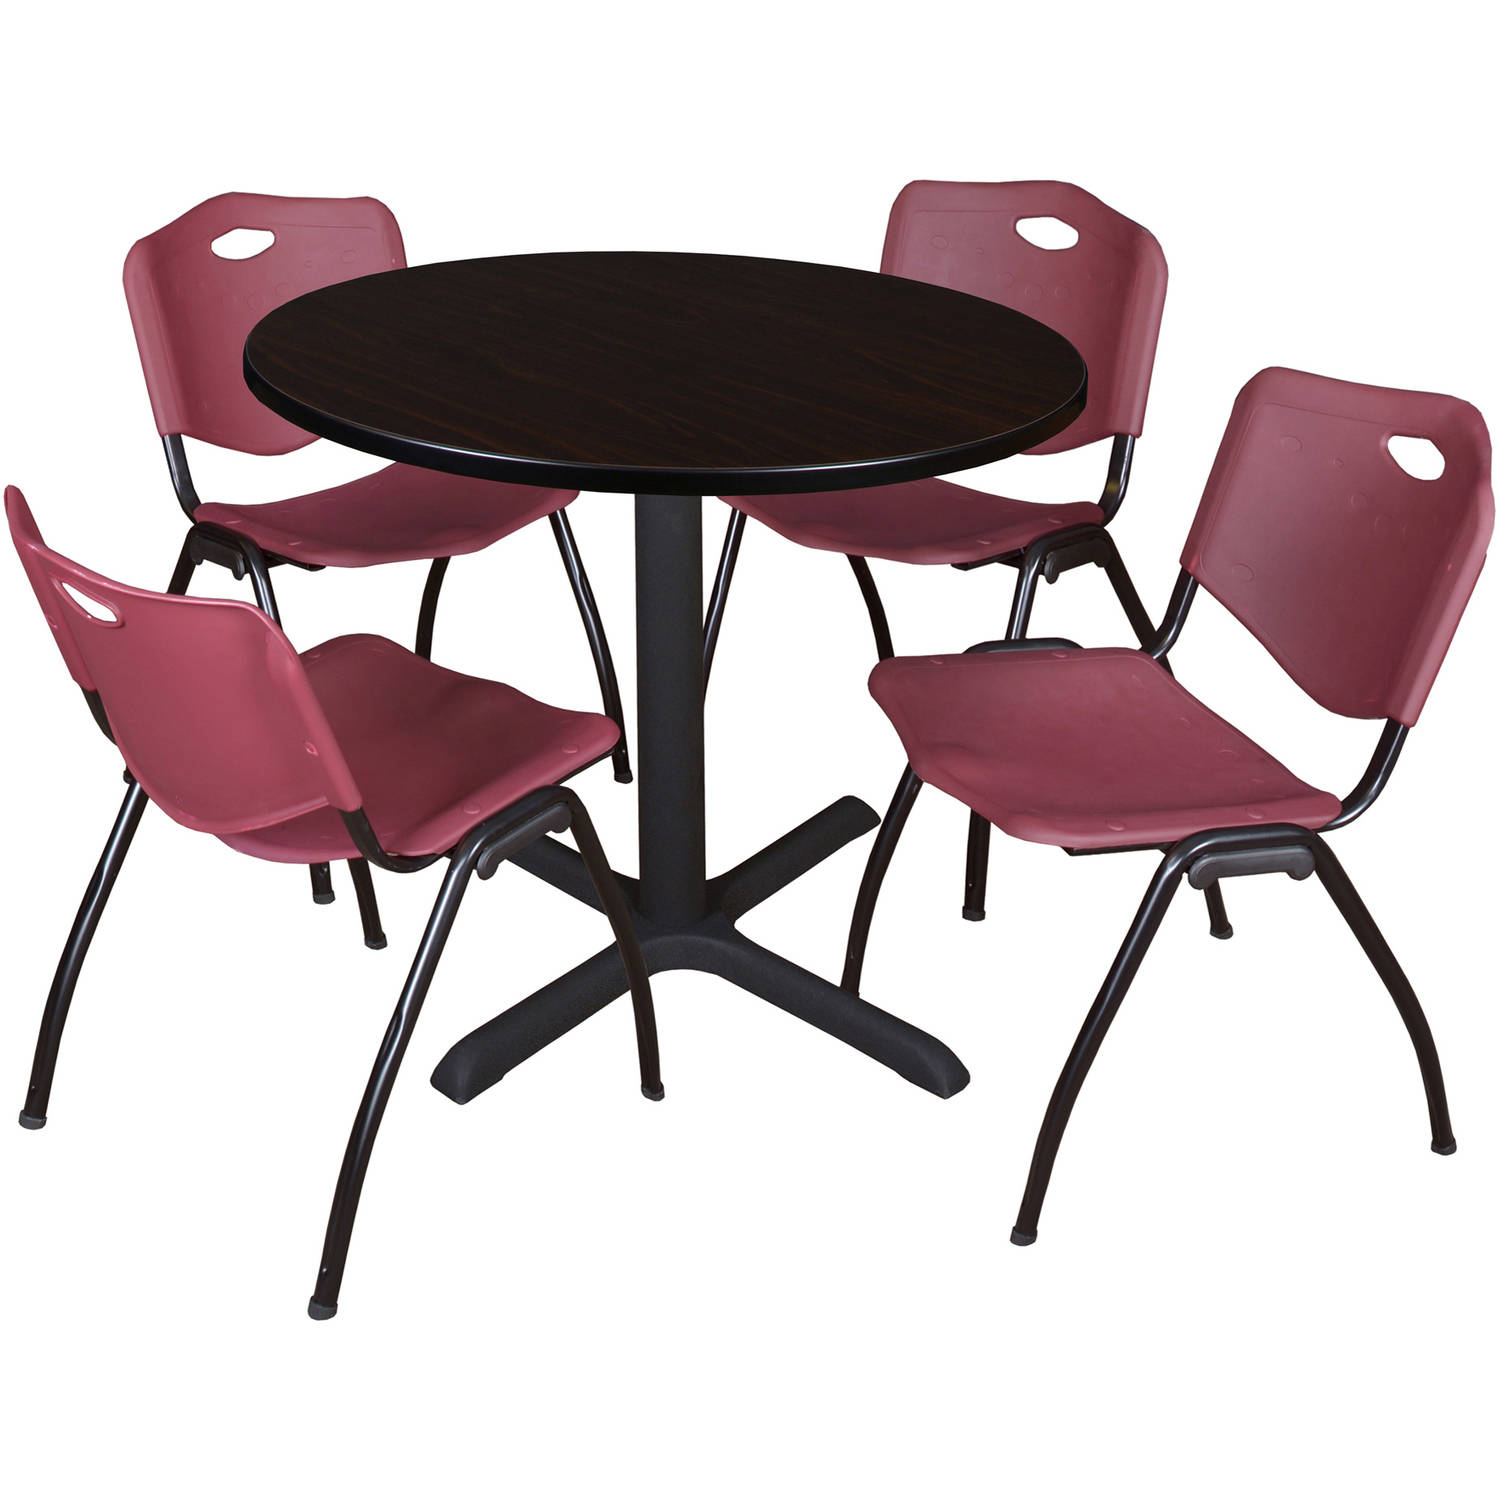 "Cain 36"" Mocha Walnut Round Breakroom Table and 4 'M' Stack Chairs, Multiple Colors"